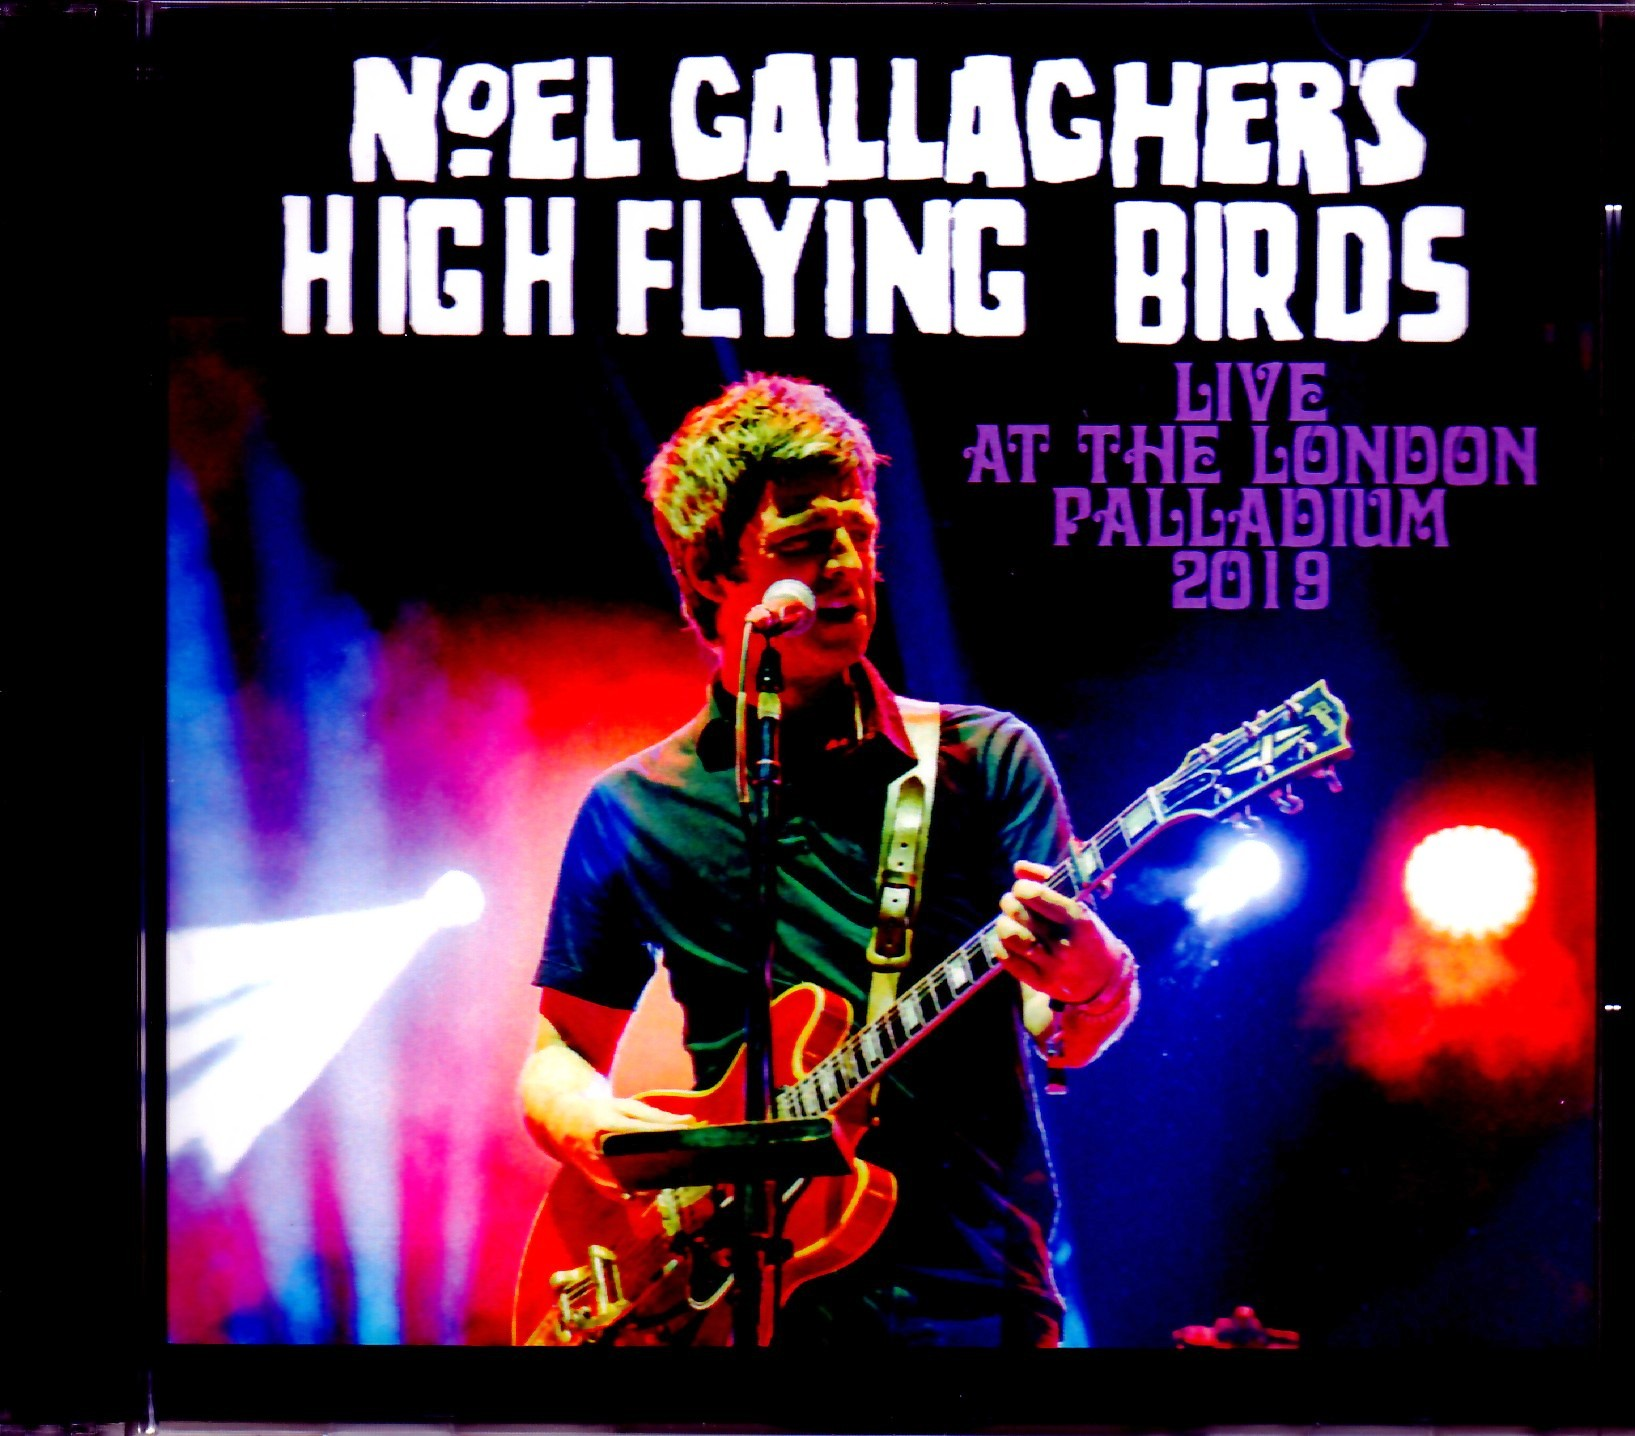 Noel Gallagher's High Flying Birds ノエル・ギャラガー/London,UK 2019